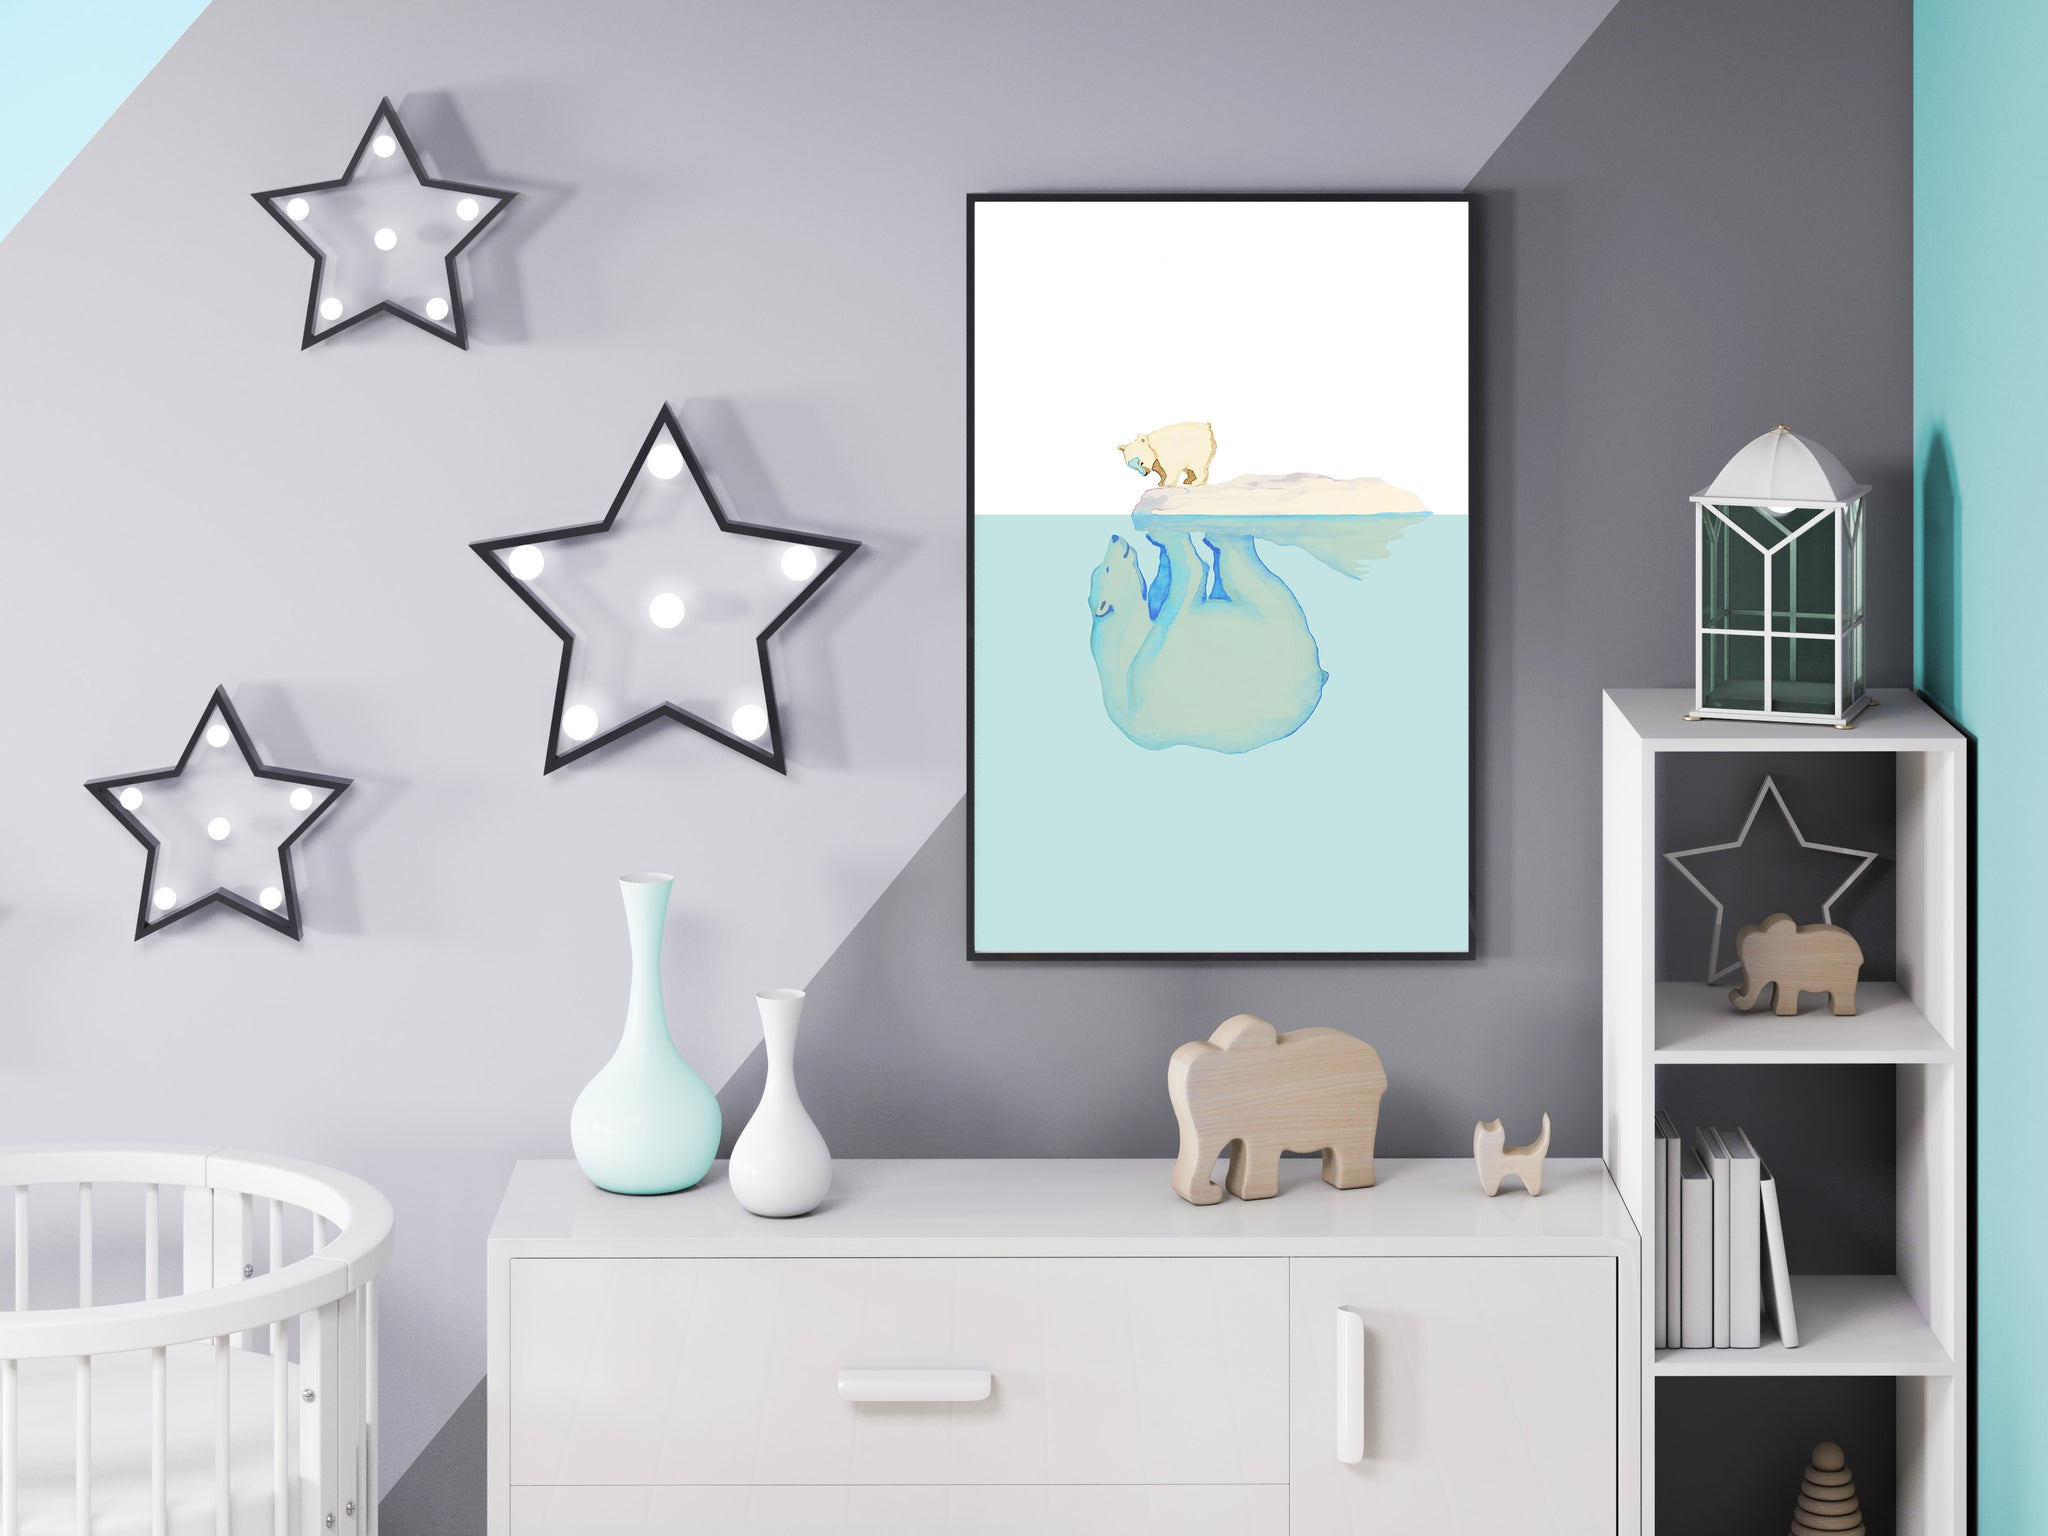 Polar Bears painted poster for kids' room interior decor by Kinos Design